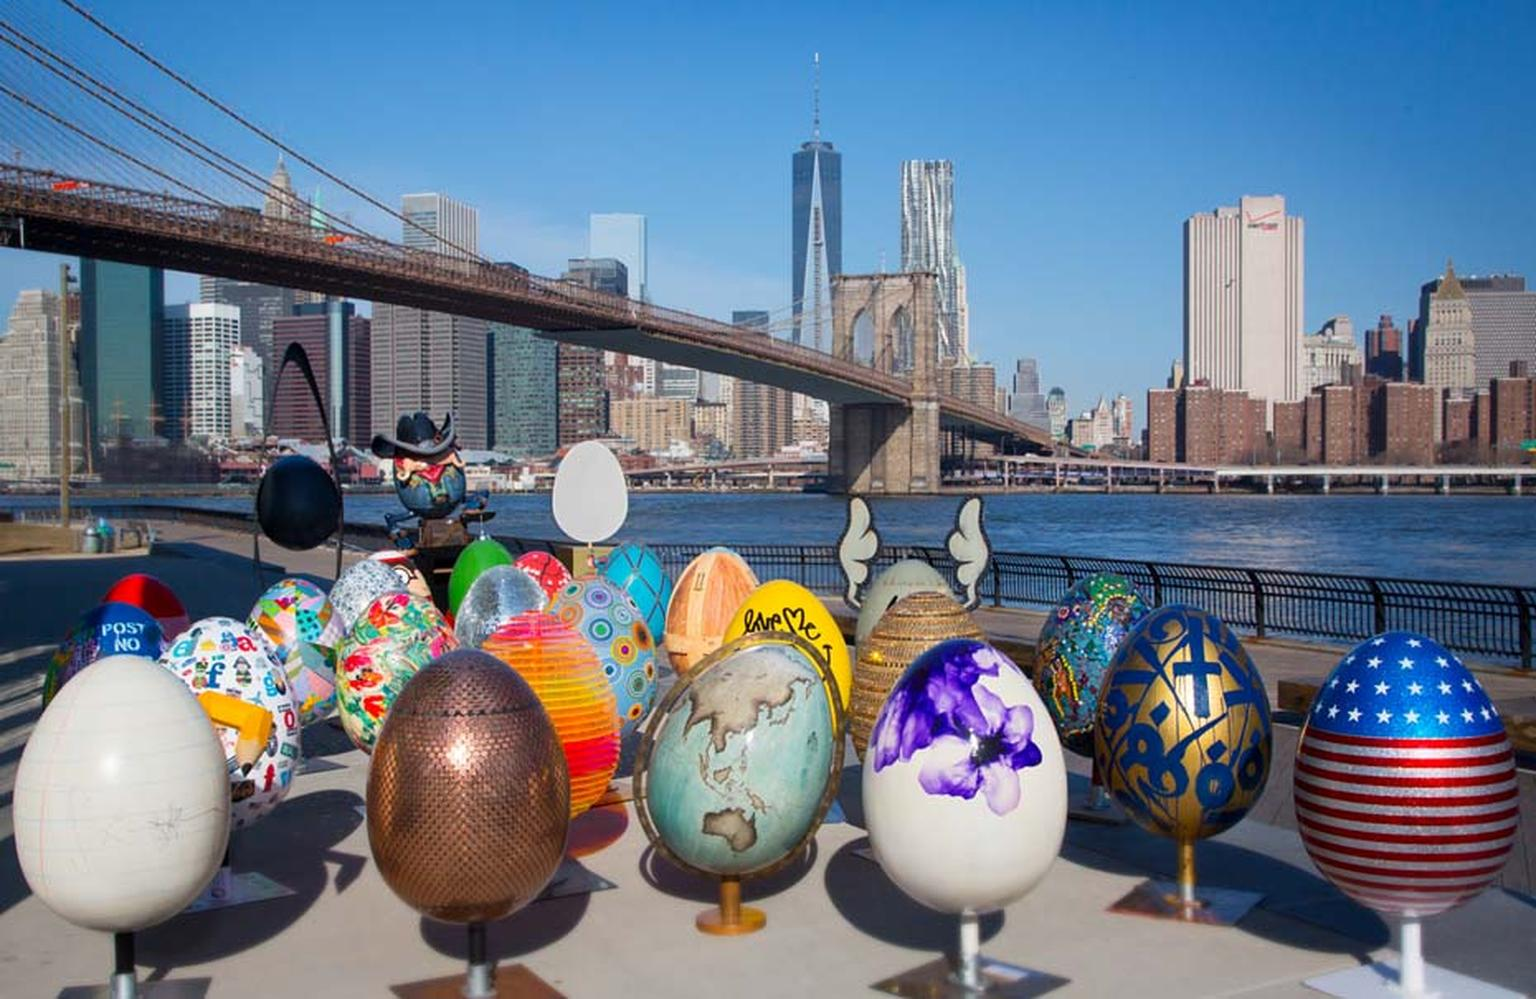 Just a handful of the Fabergé Big Egg Hunt eggs amidst the NYC skyline.